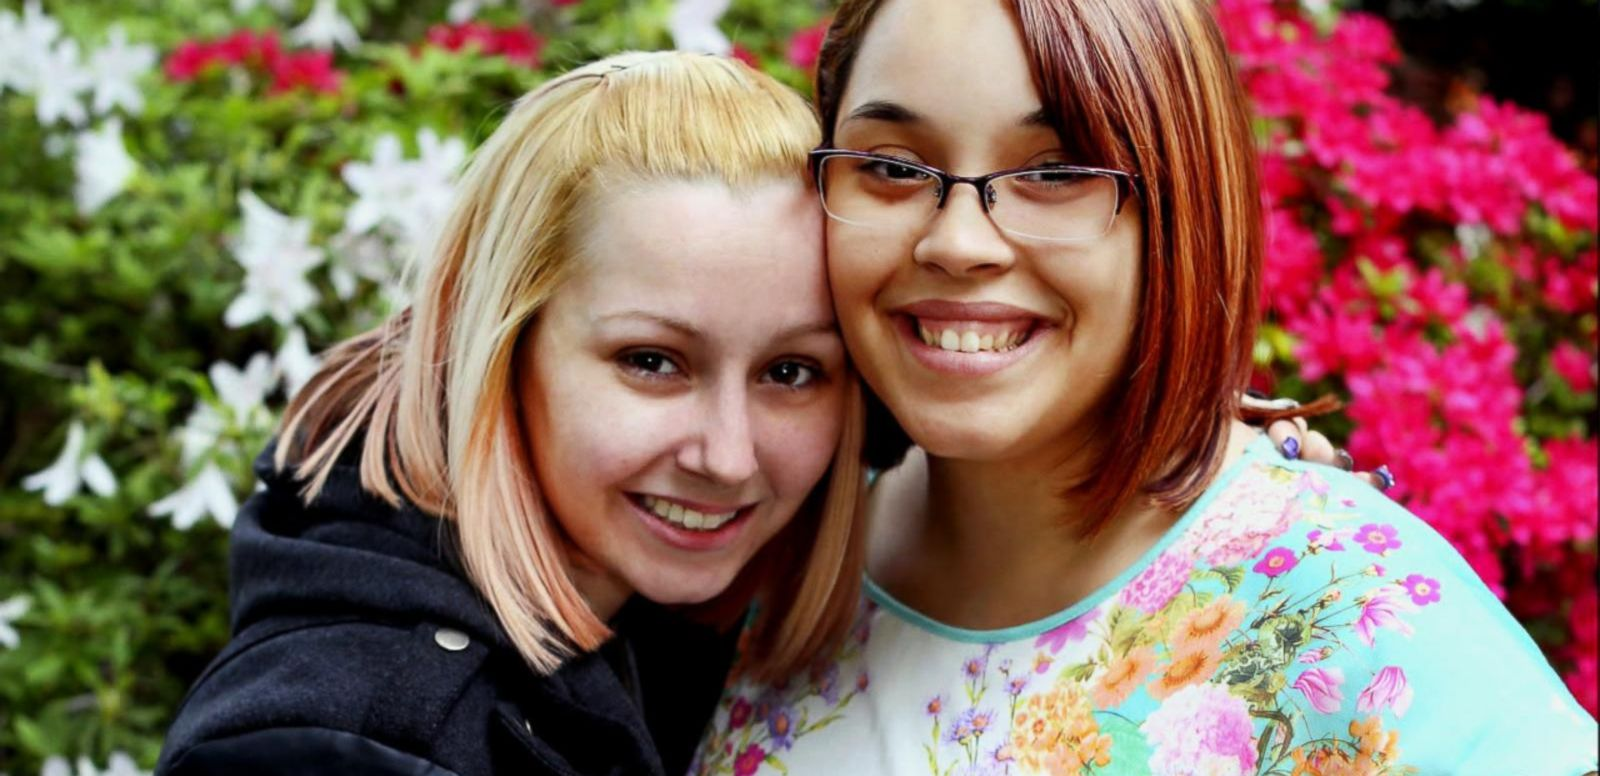 What Freedom Is Like for Survivors Gina DeJesus, Amanda Berry